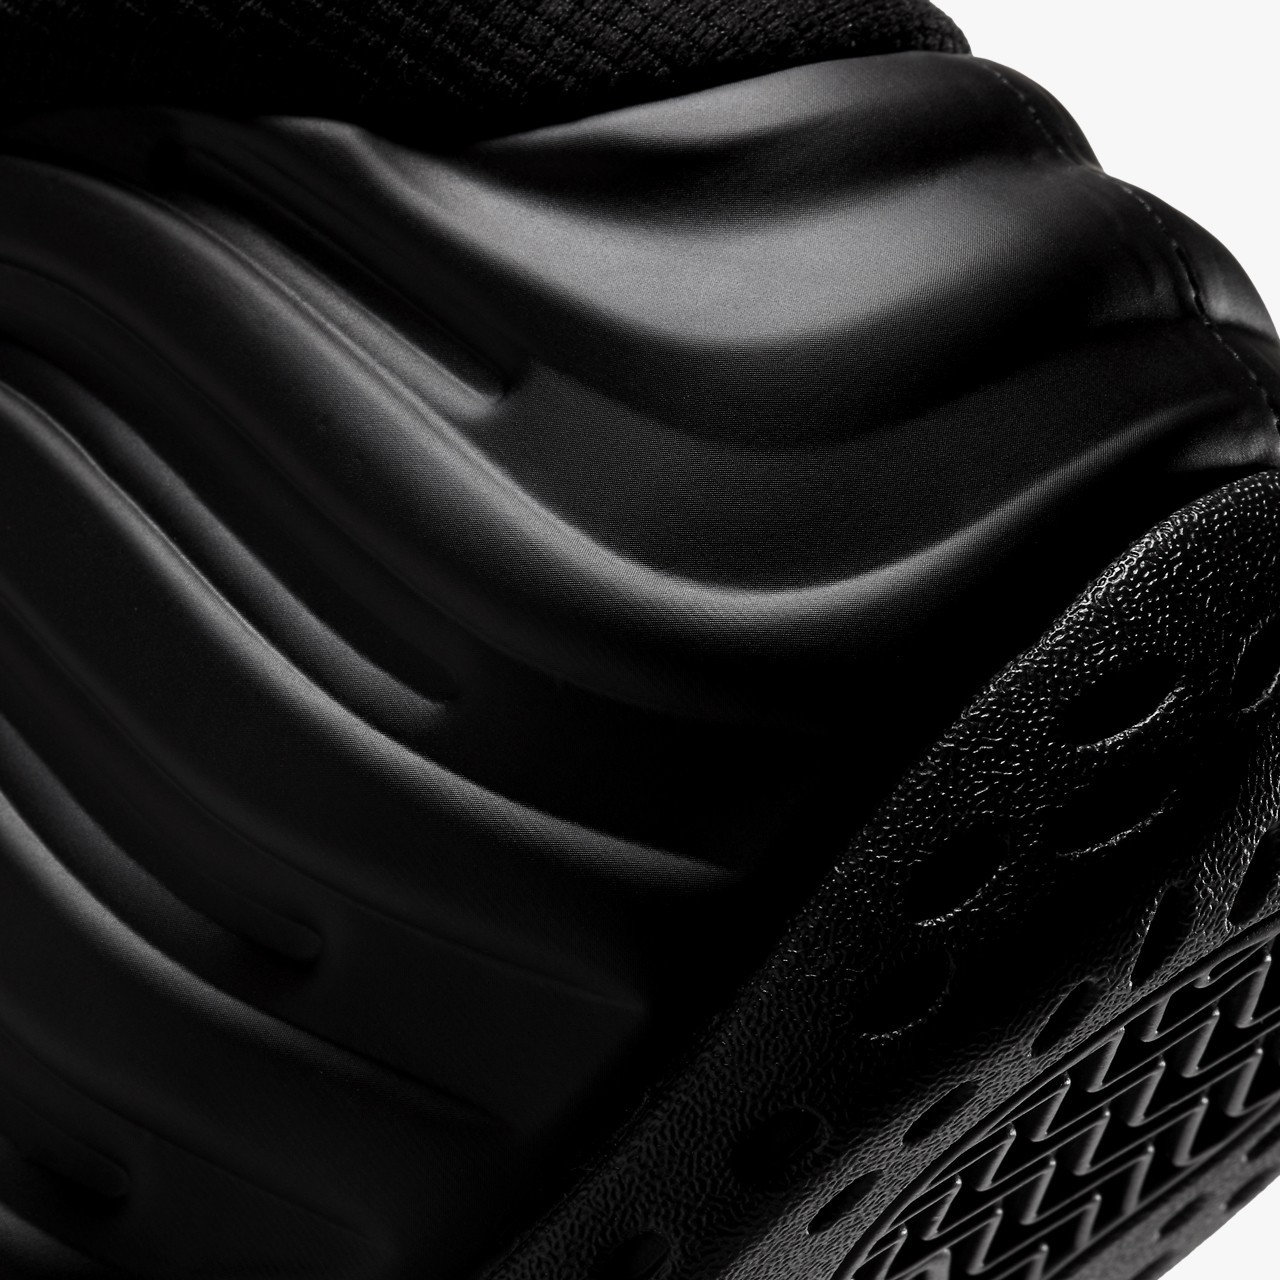 Nike Air Foamposite One Stealth New Images ...